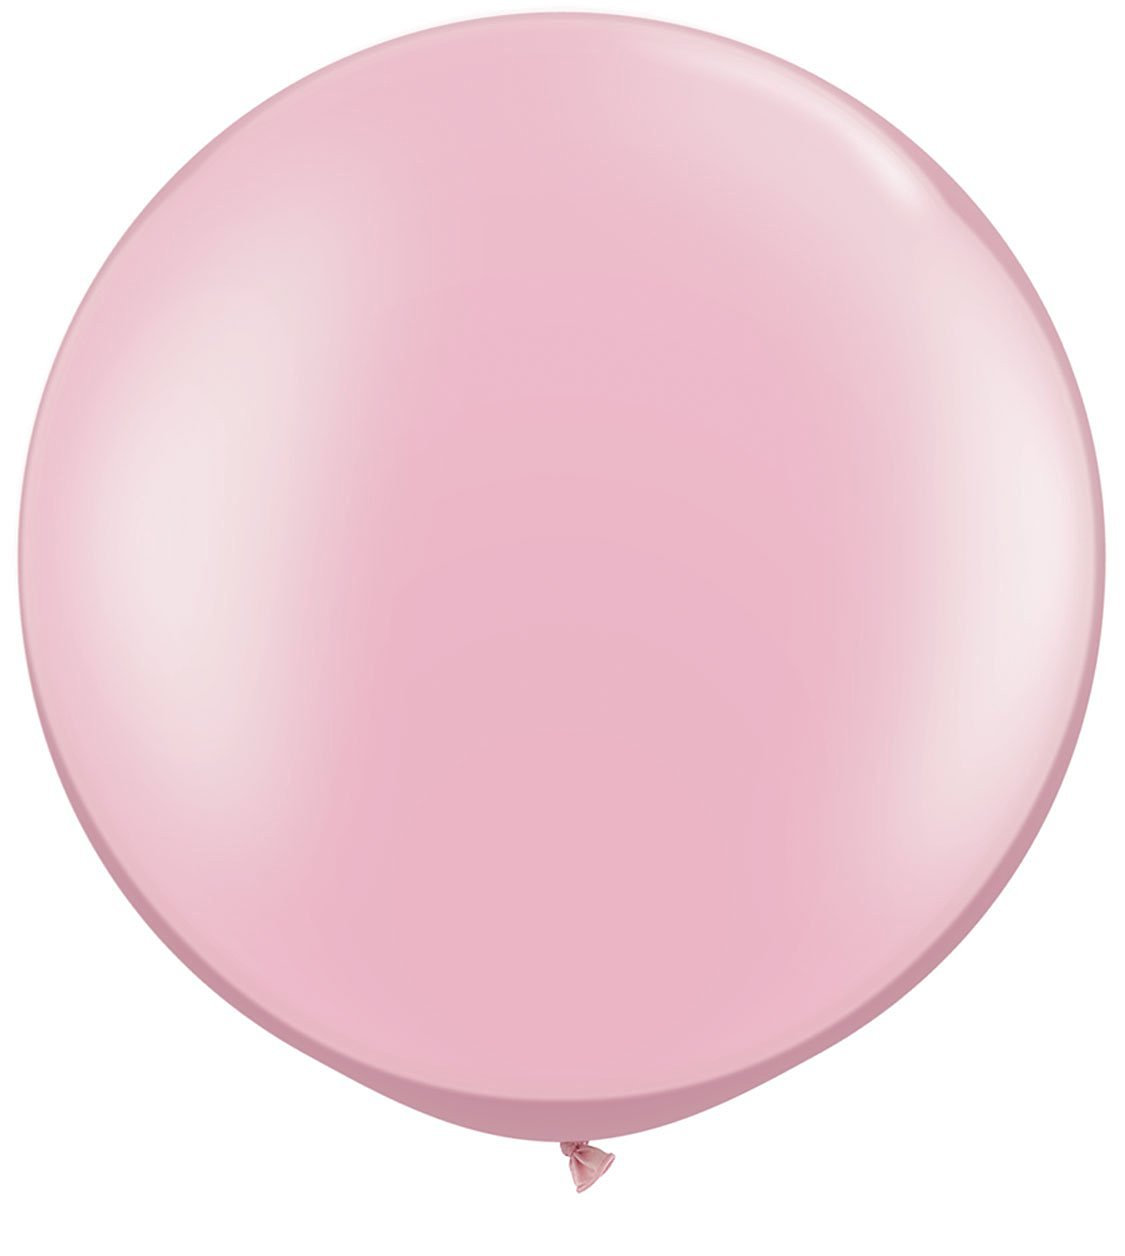 "Pearl Light Pink 30"" Giant Qualatex Latex Balloons x 2"